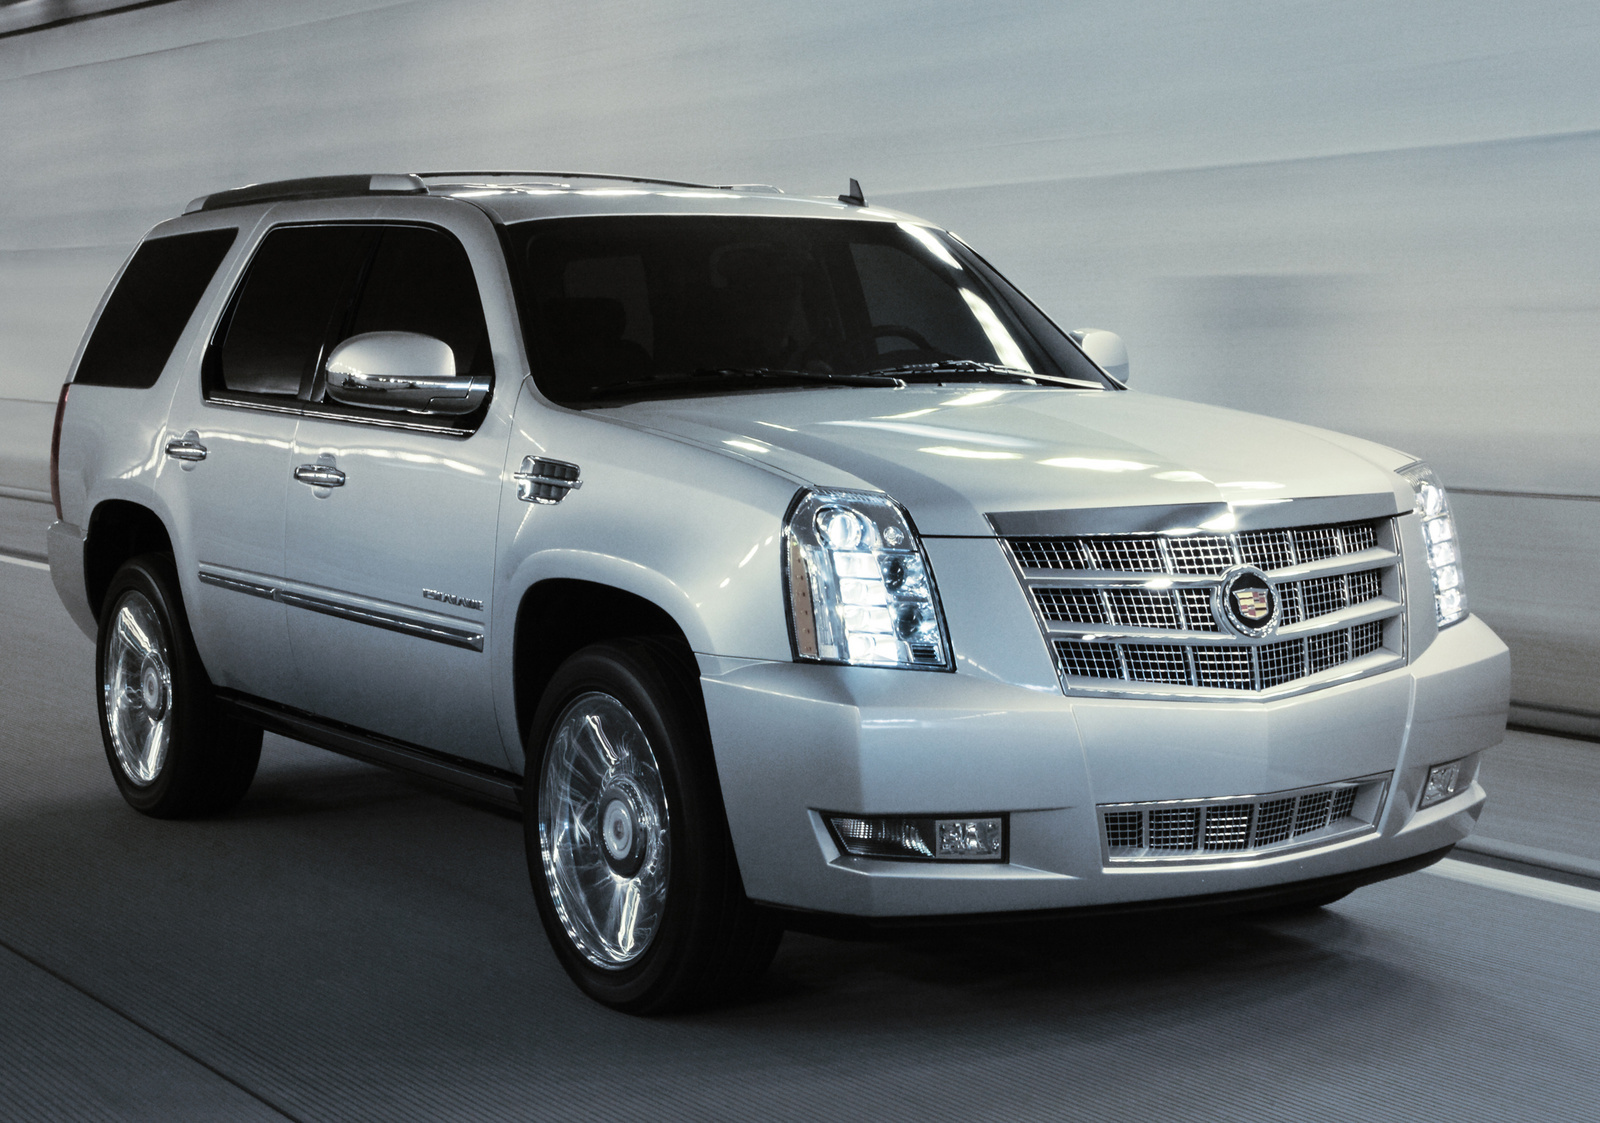 2014 Cadillac Escalade - Review